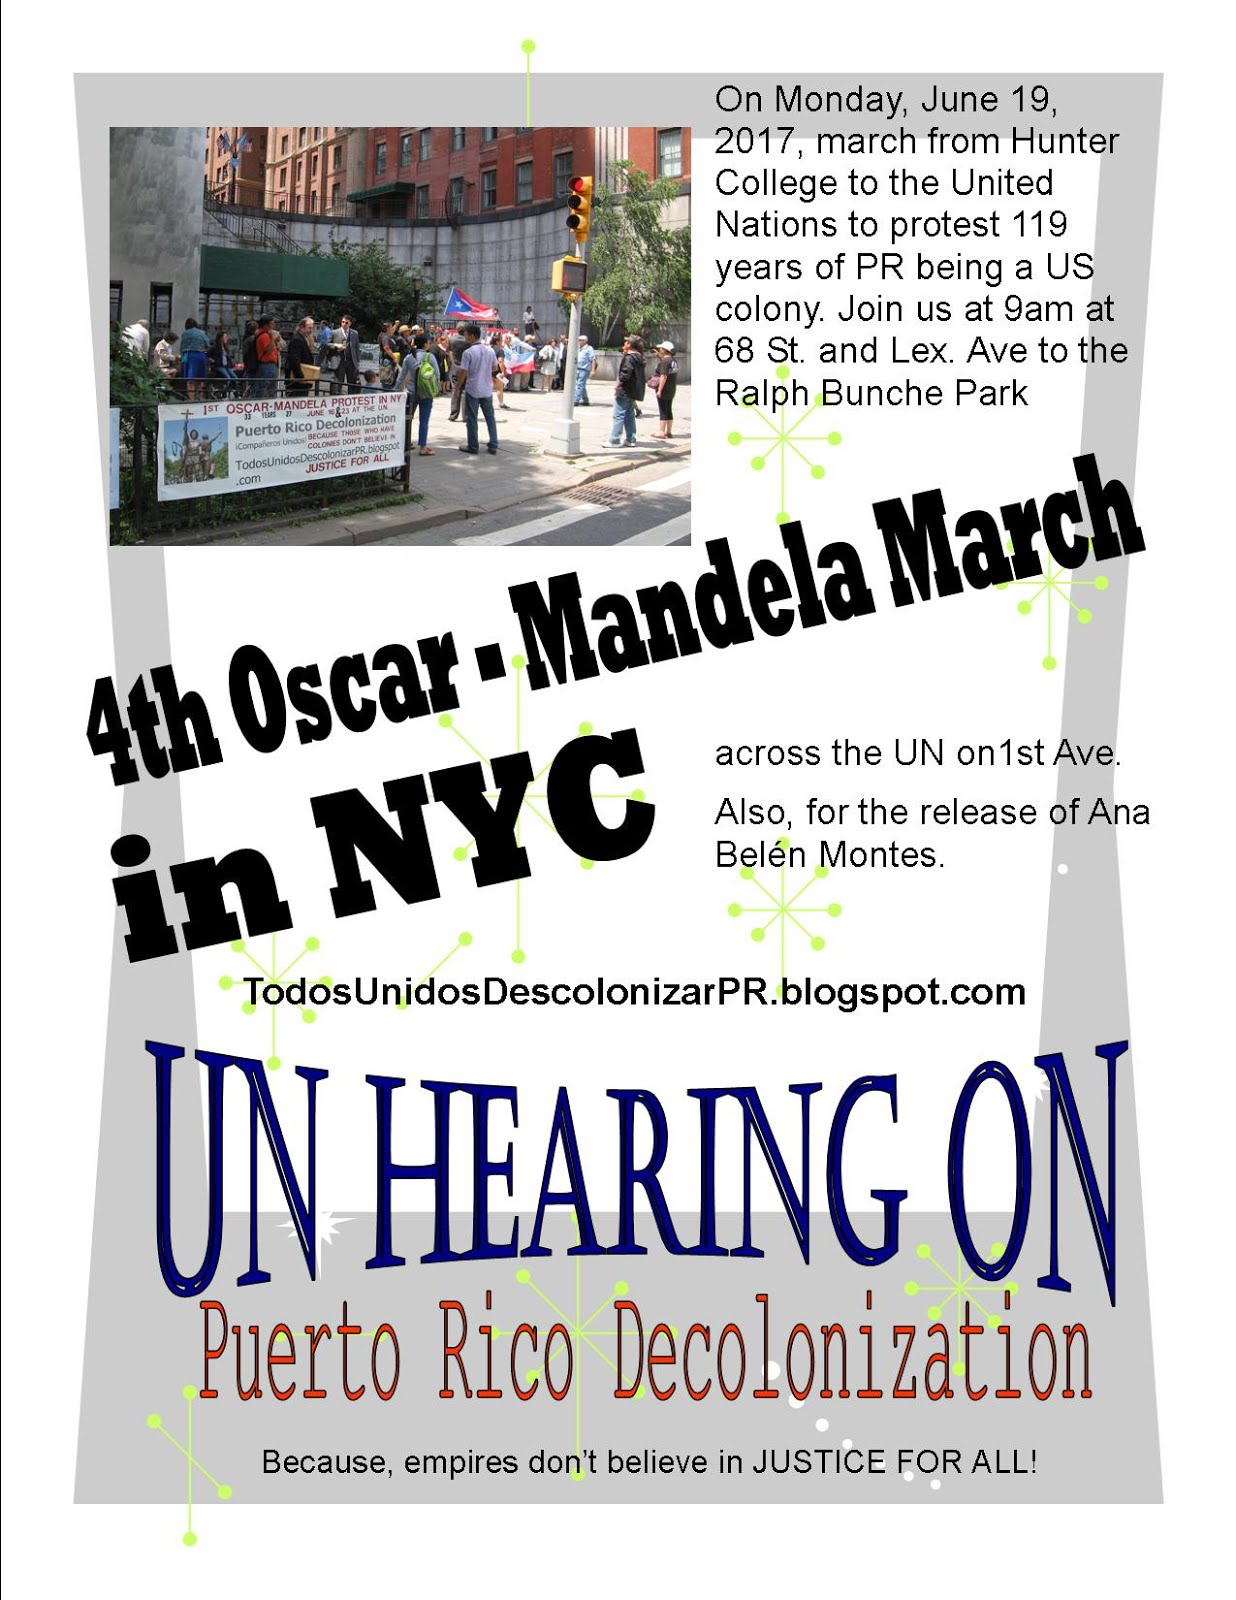 4th Oscar - Mandela March in NYC 2017